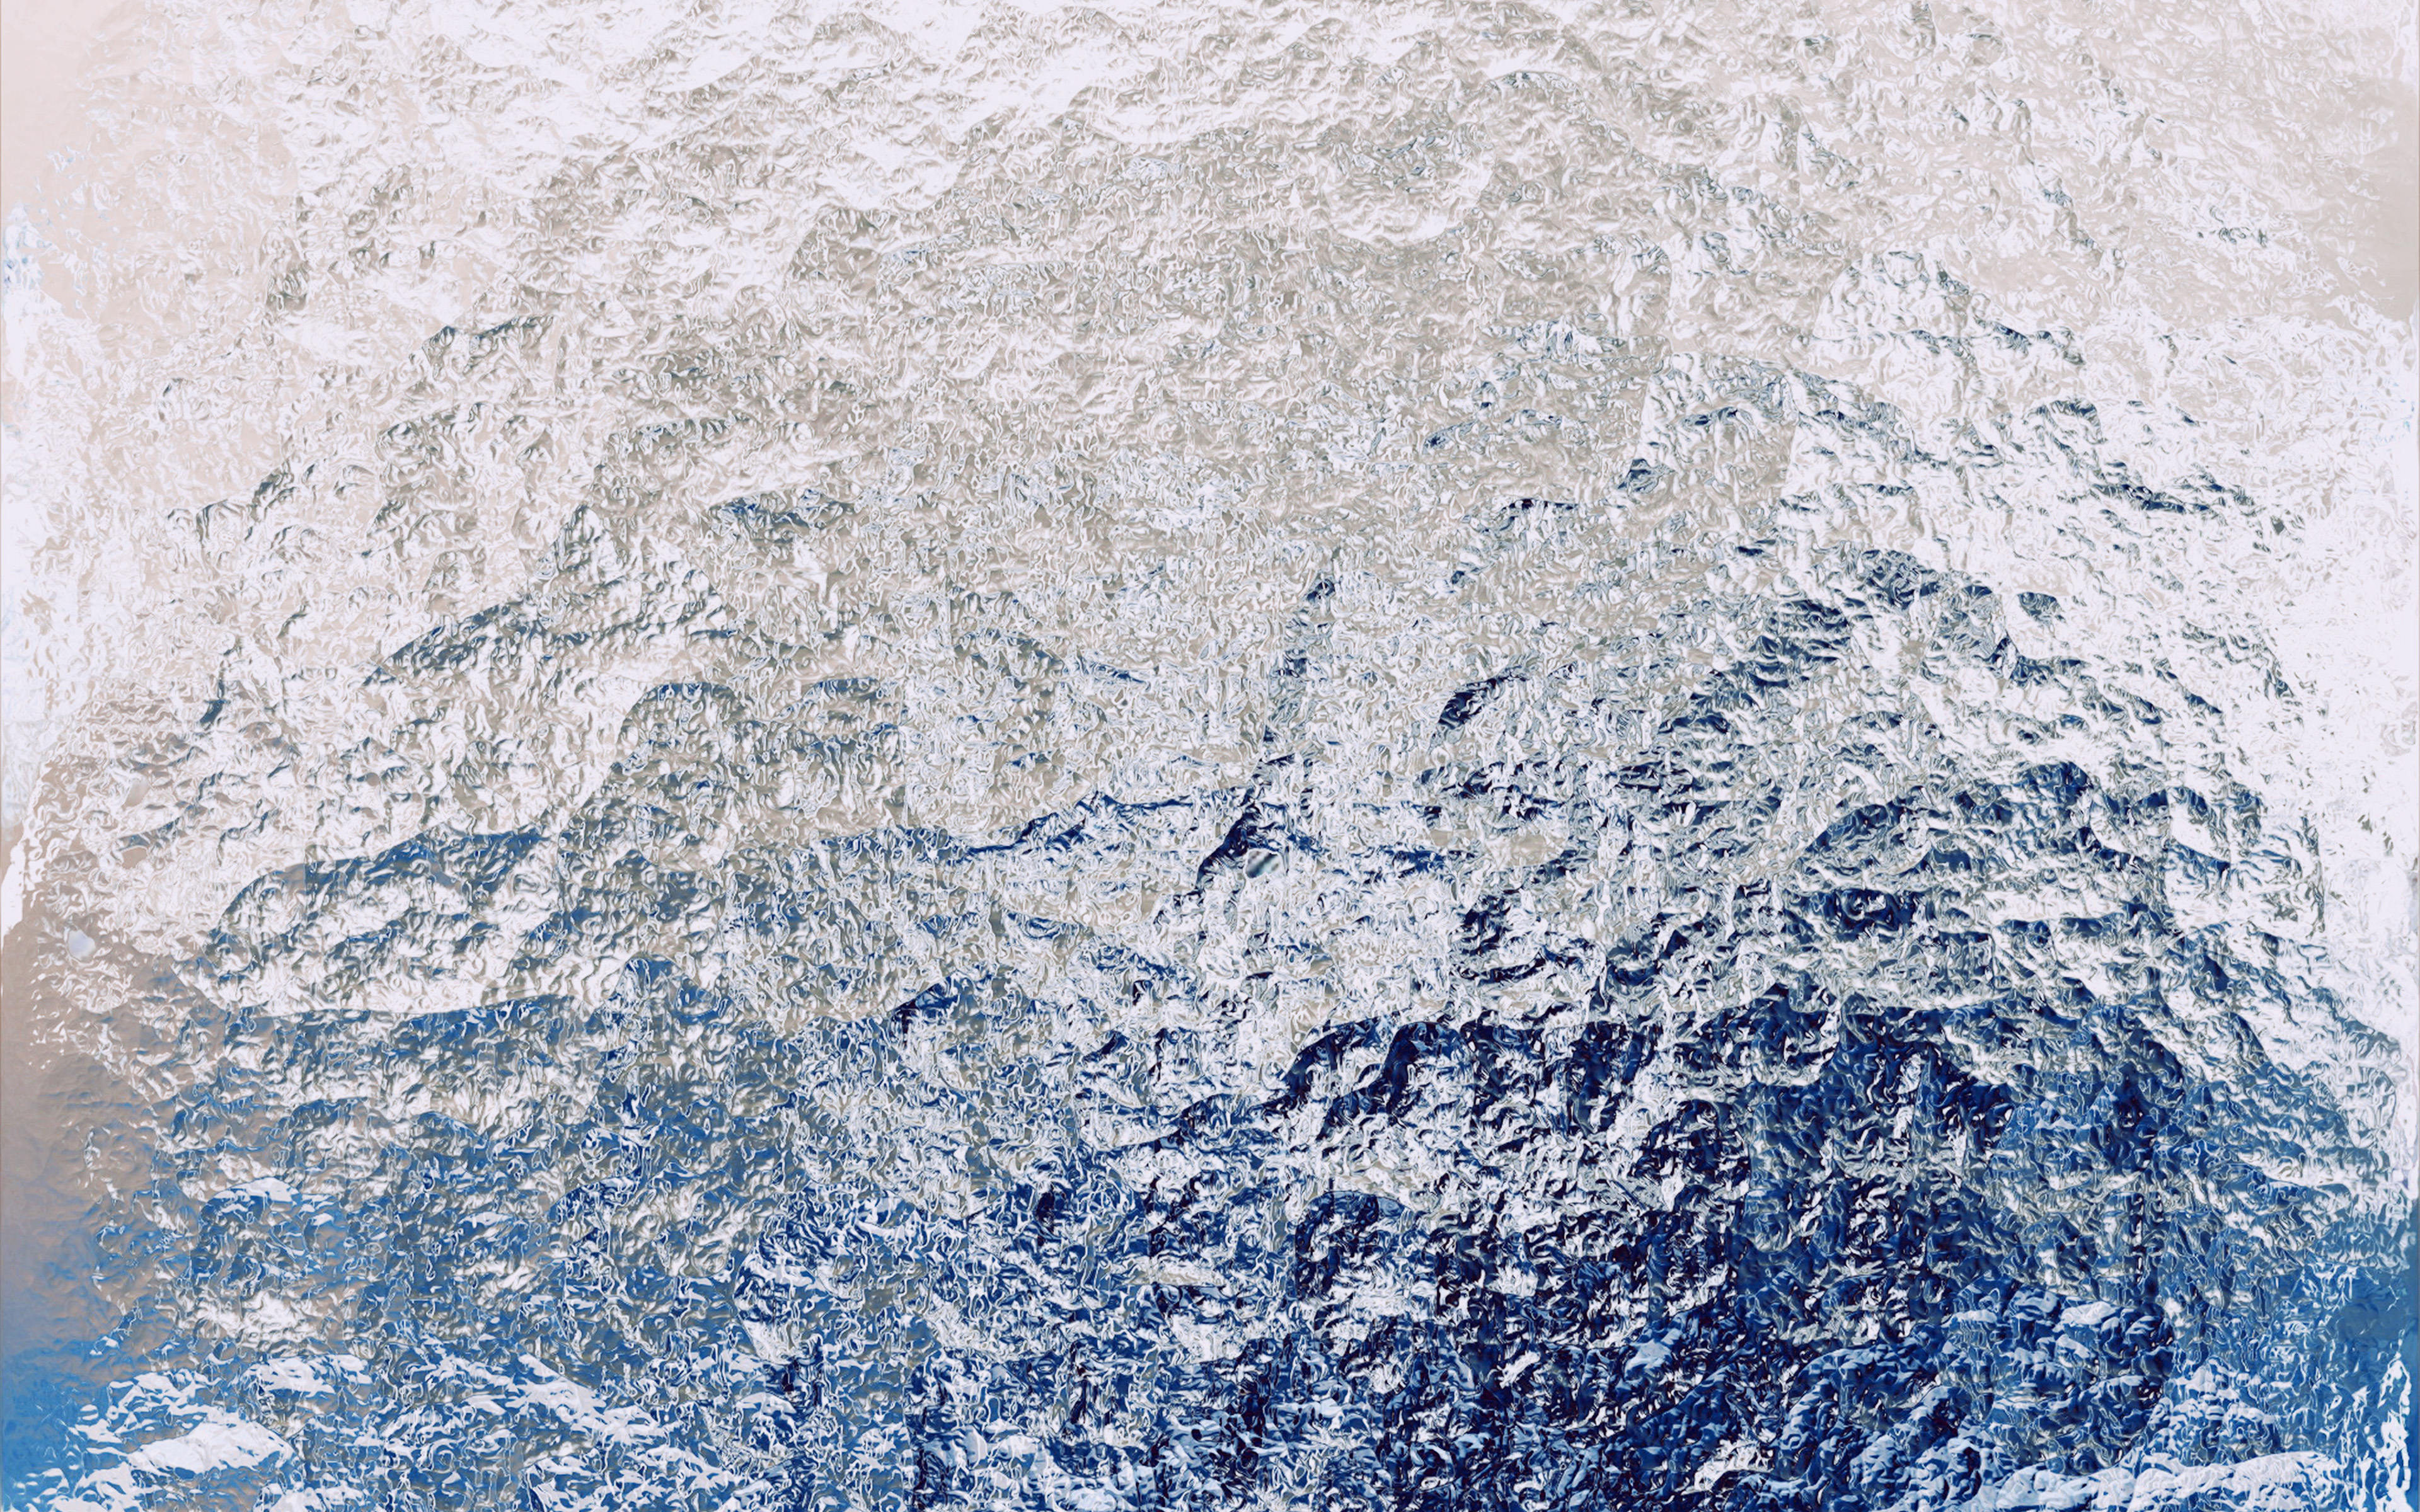 Download These Beautiful Texture Wallpapers For Iphone Ipad And Mac